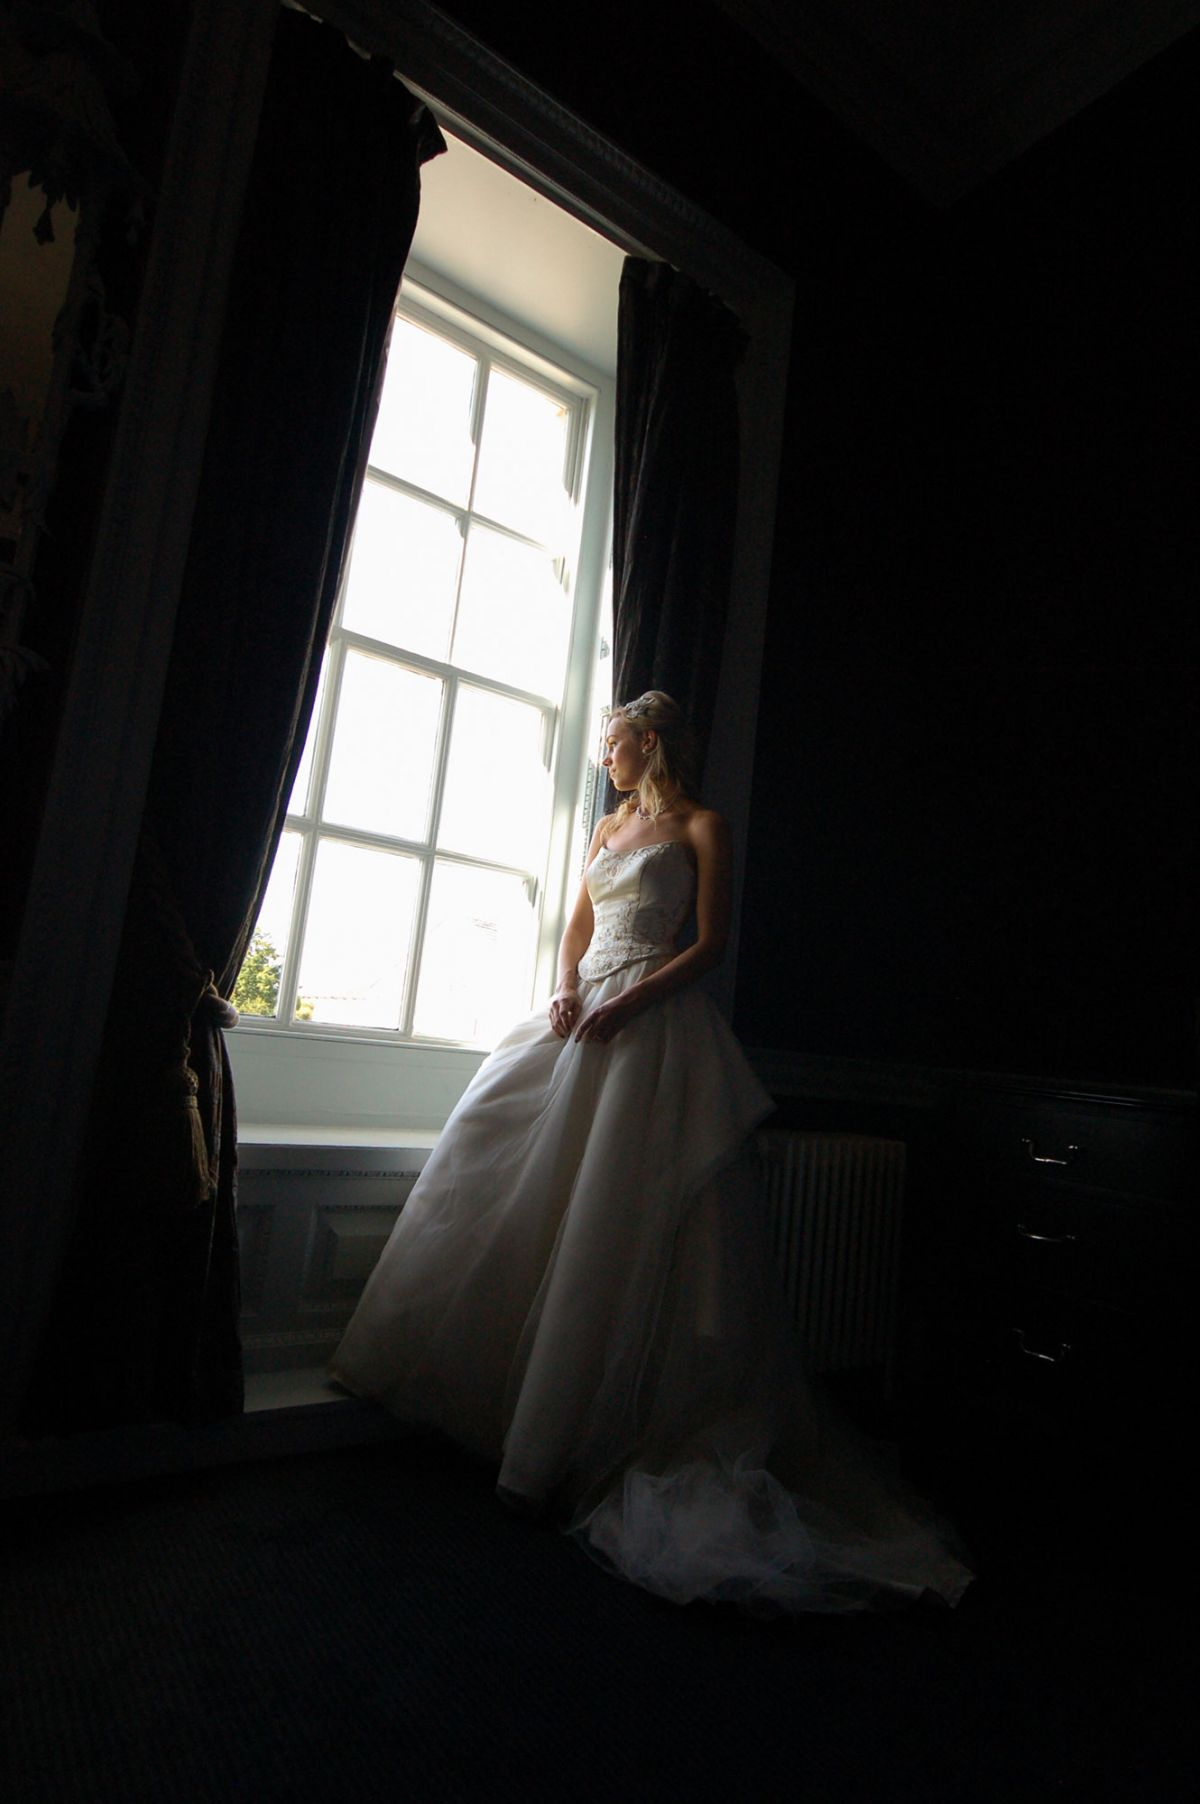 Documentary wedding photography in Surrey, Sussex and London by Surrey Event Photography